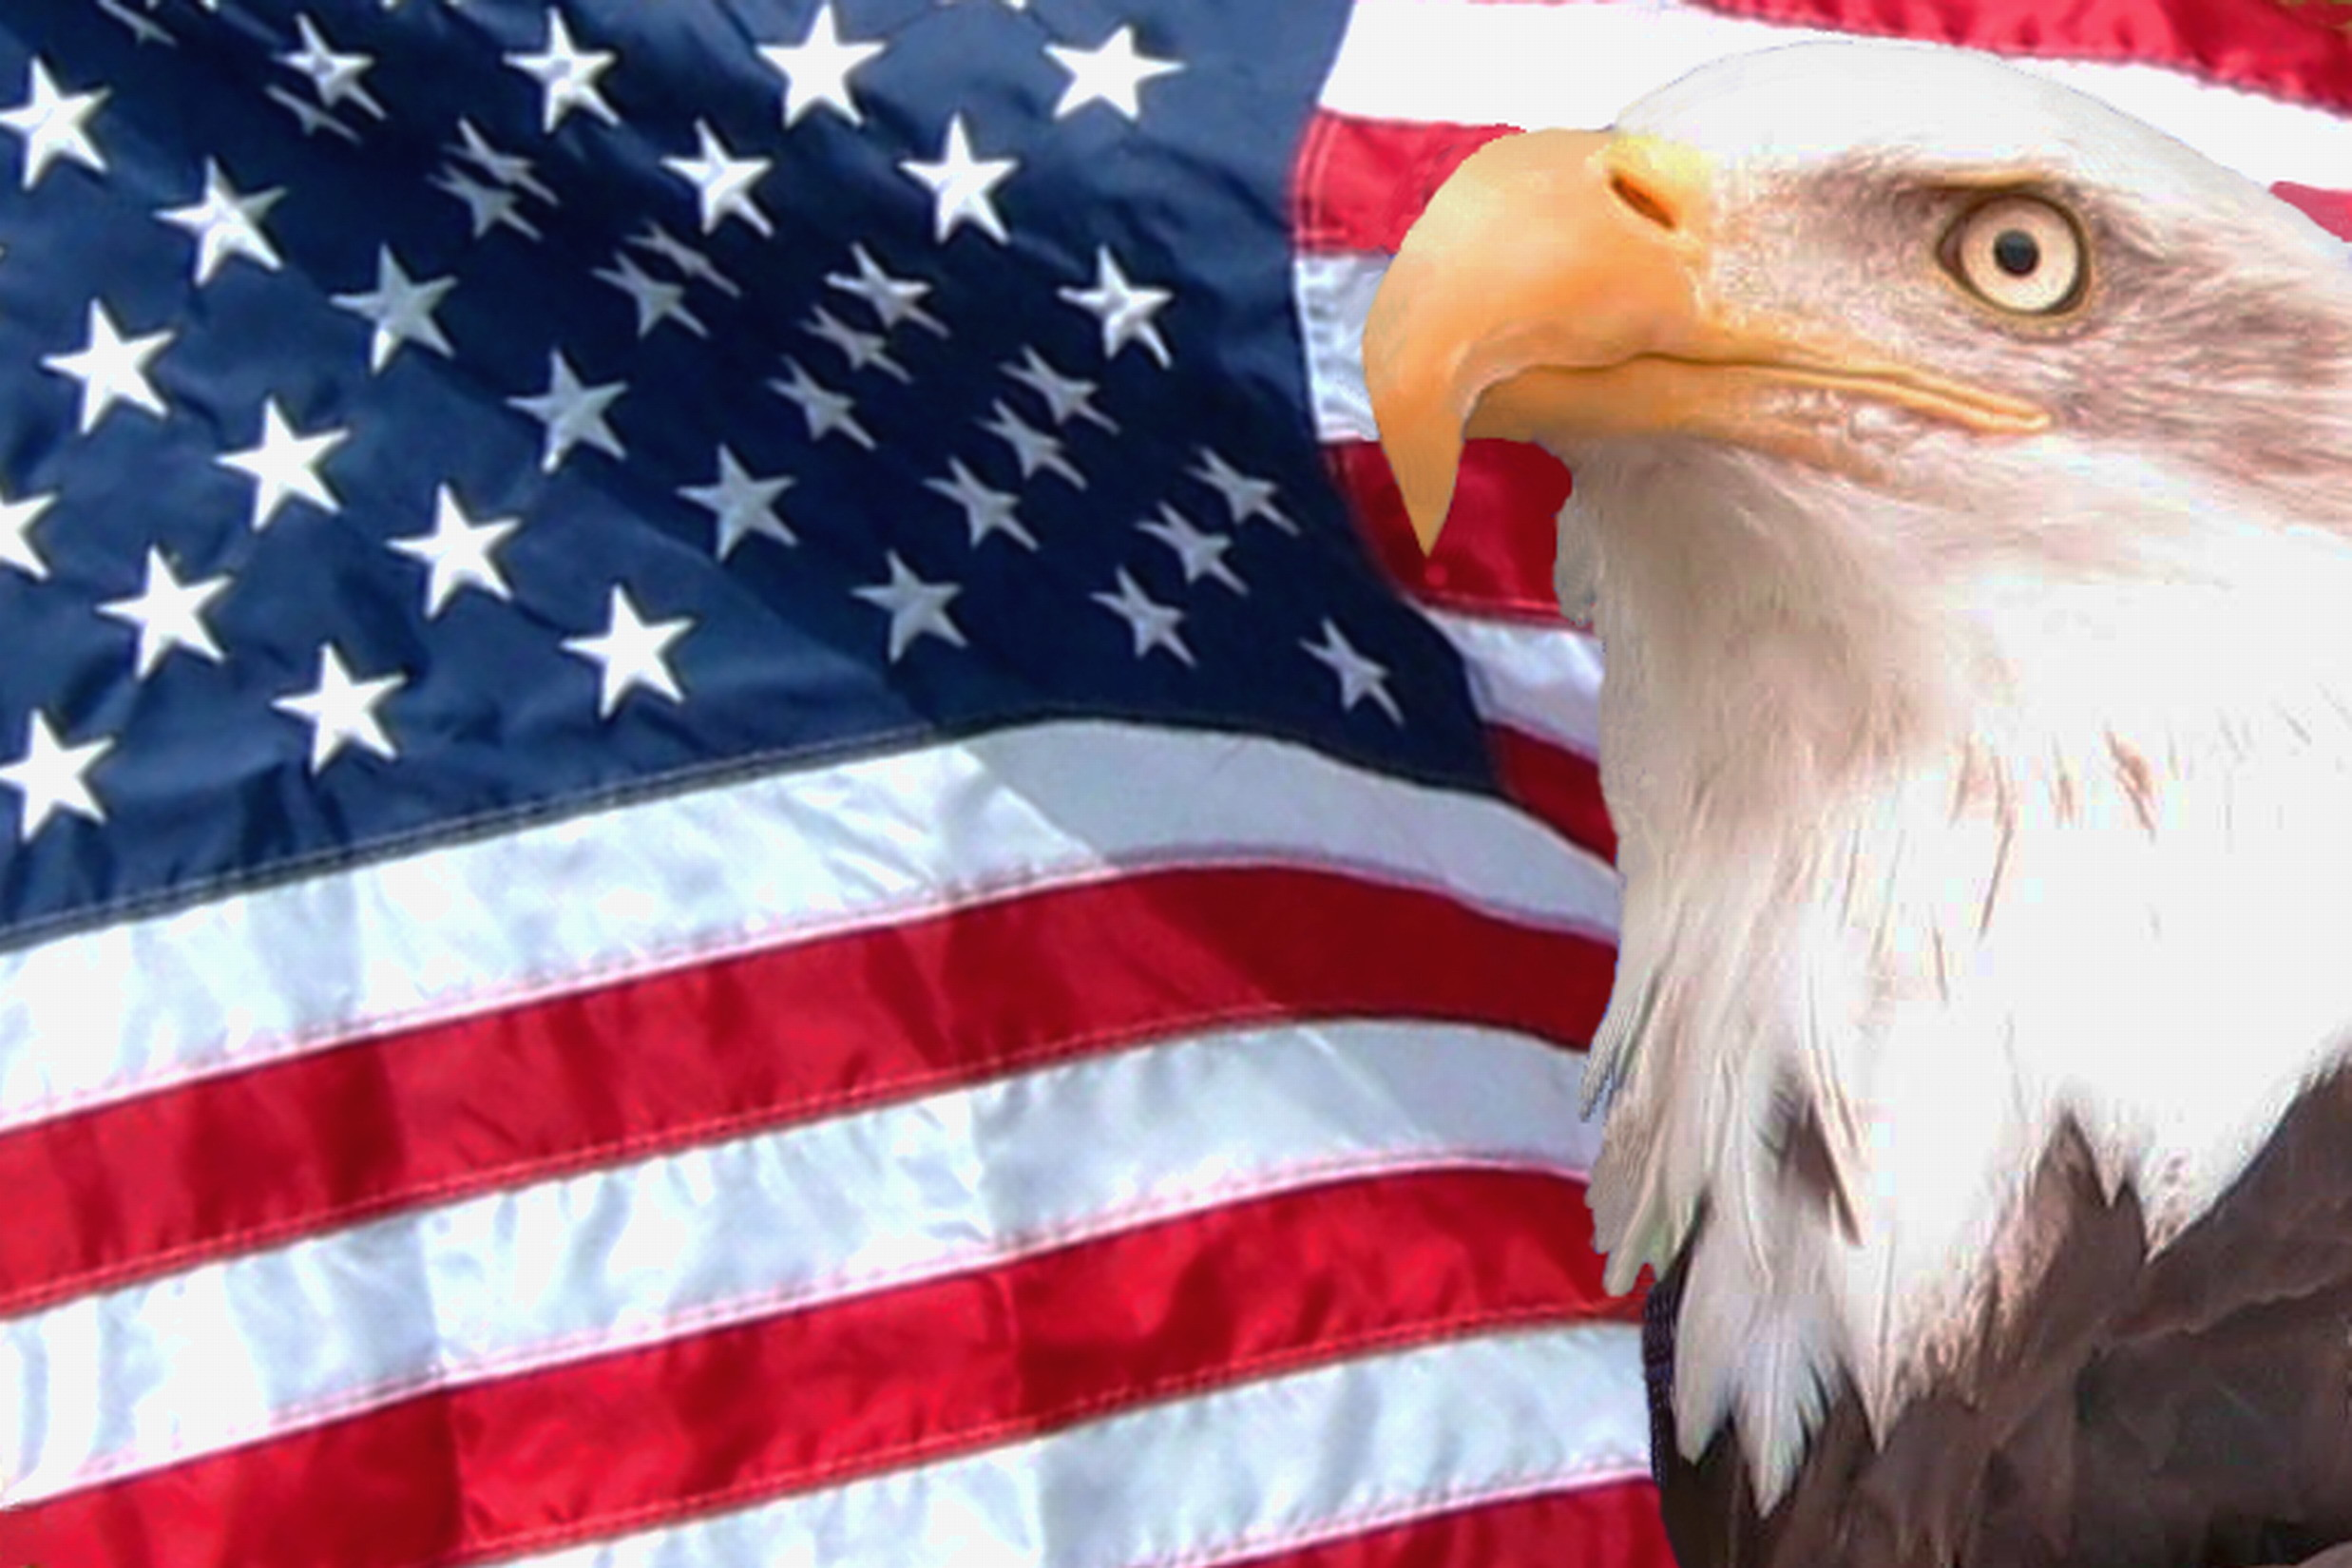 2475x1650 hd american flag with eagle background